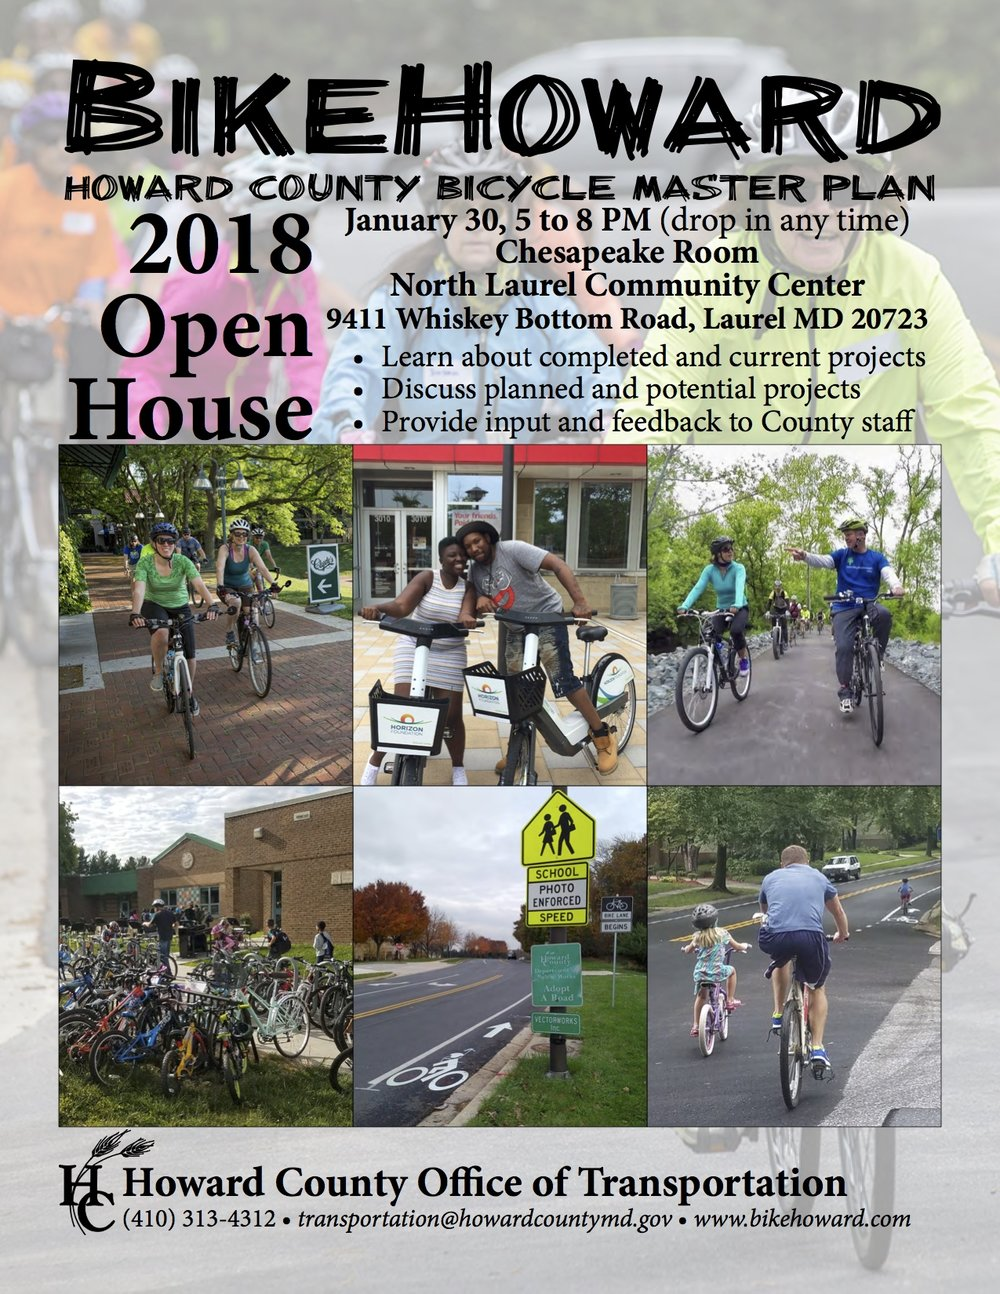 bikehoward-open-house-2018-flyer-v6.jpg